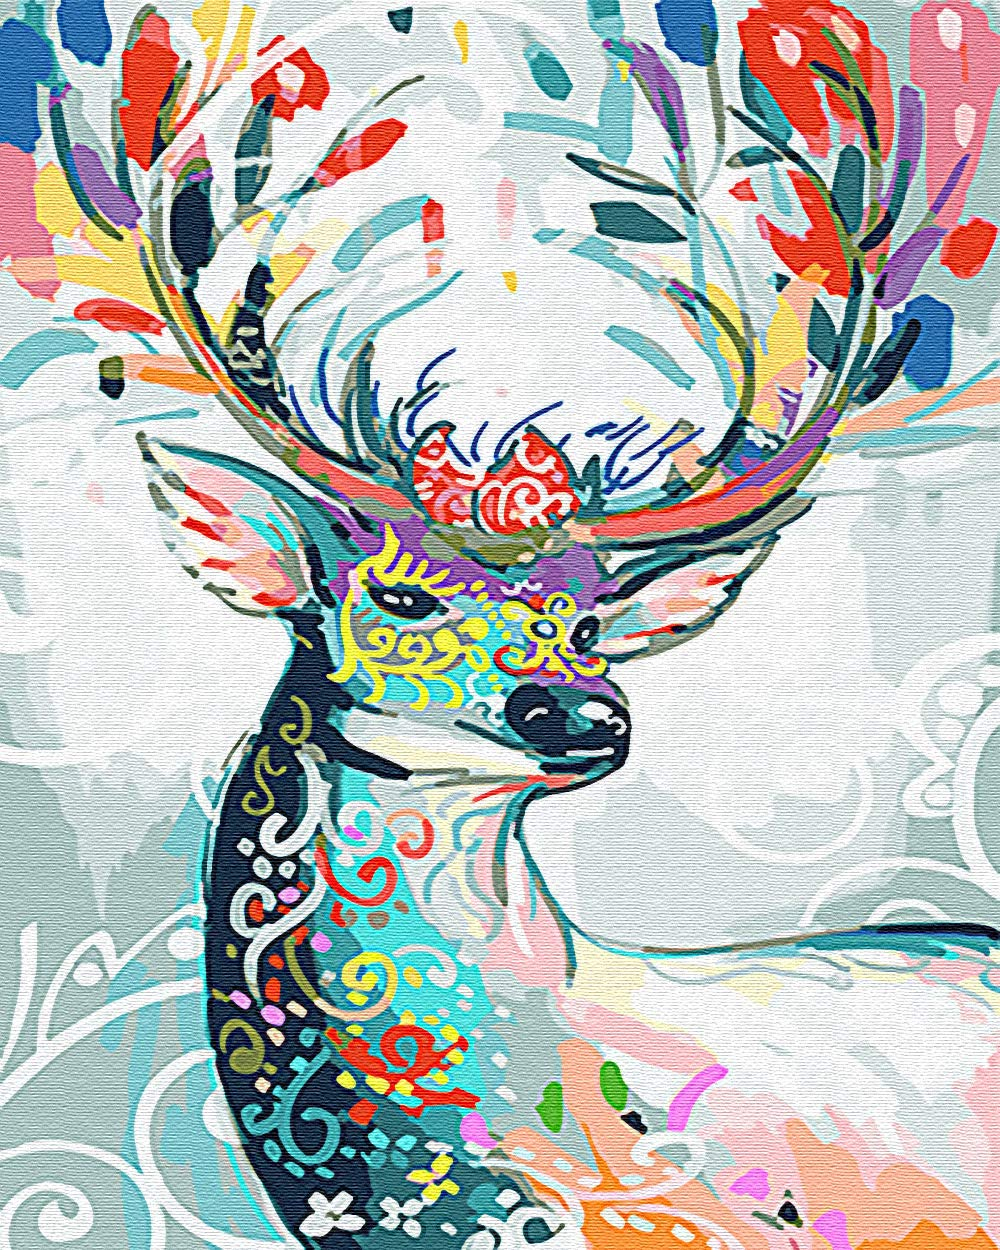 16 x 20 Color Deer Pattern iCoostor Paint by Numbers DIY Acrylic Painting Kit for Kids /& Adults Beginner